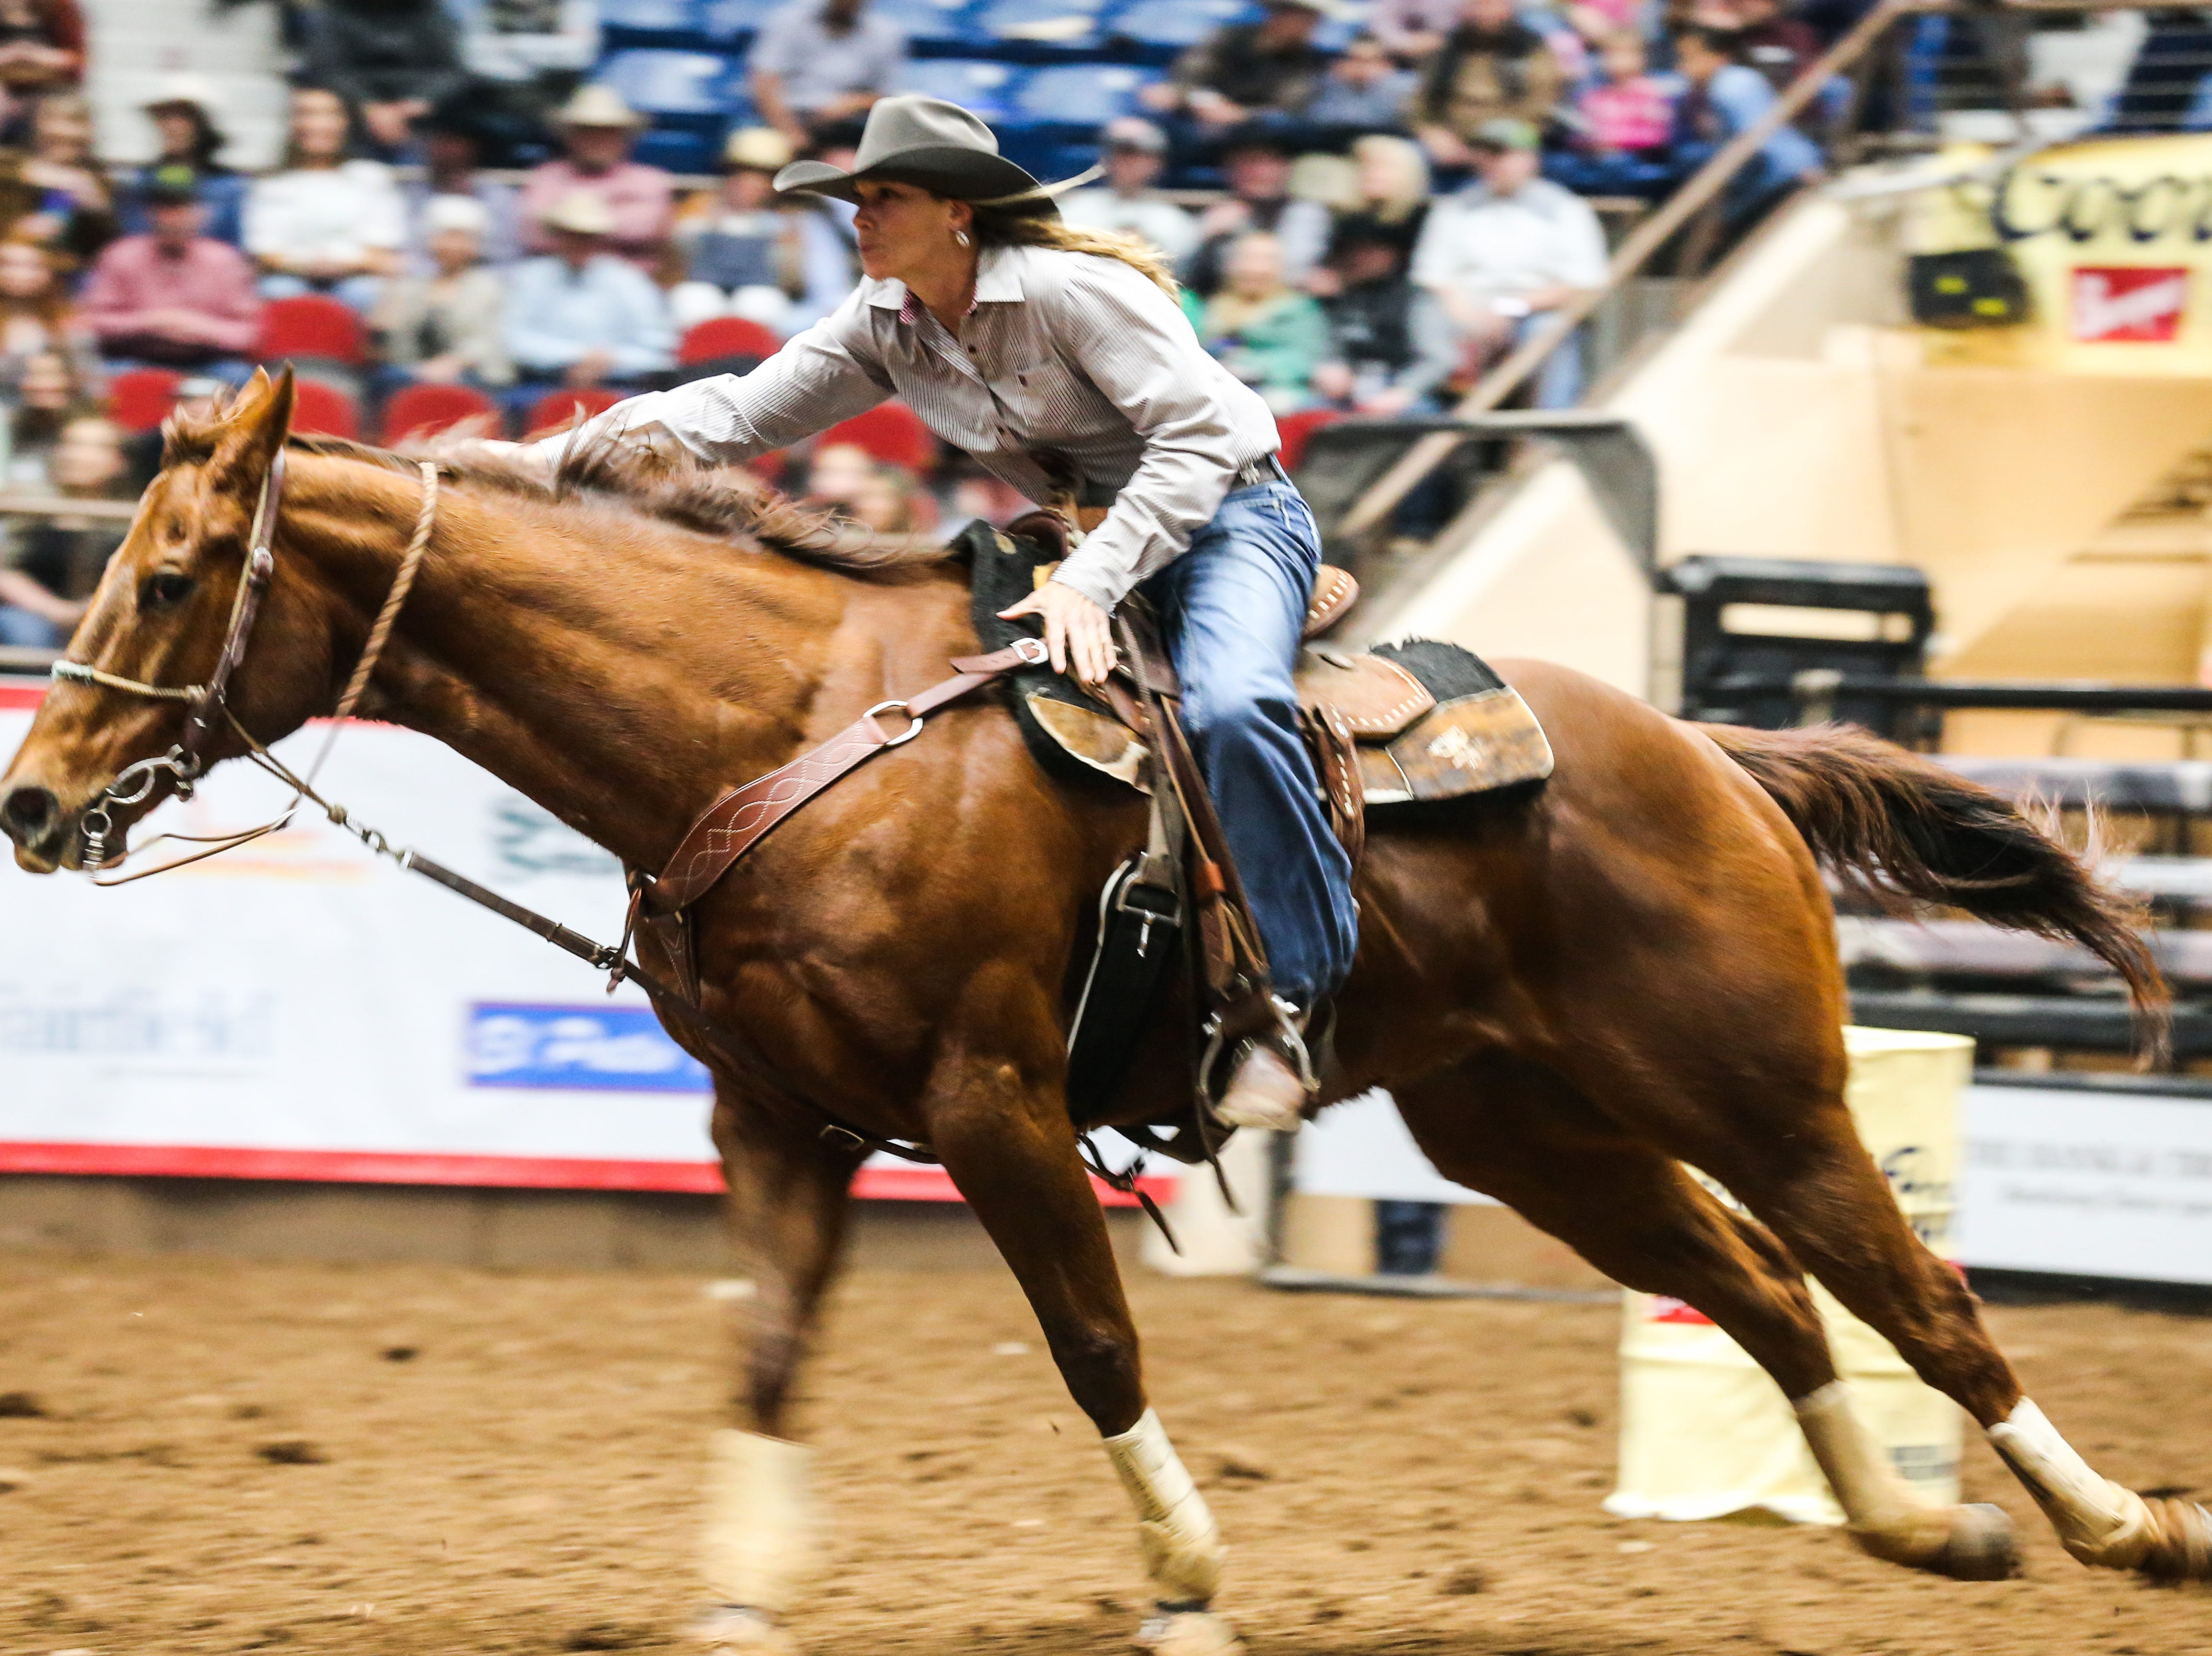 Reiney Lukas races barrels during the 3rd performance of the San Angelo Stock Show & Rodeo Saturday, Feb. 2, 2019, at Foster Communications Coliseum.